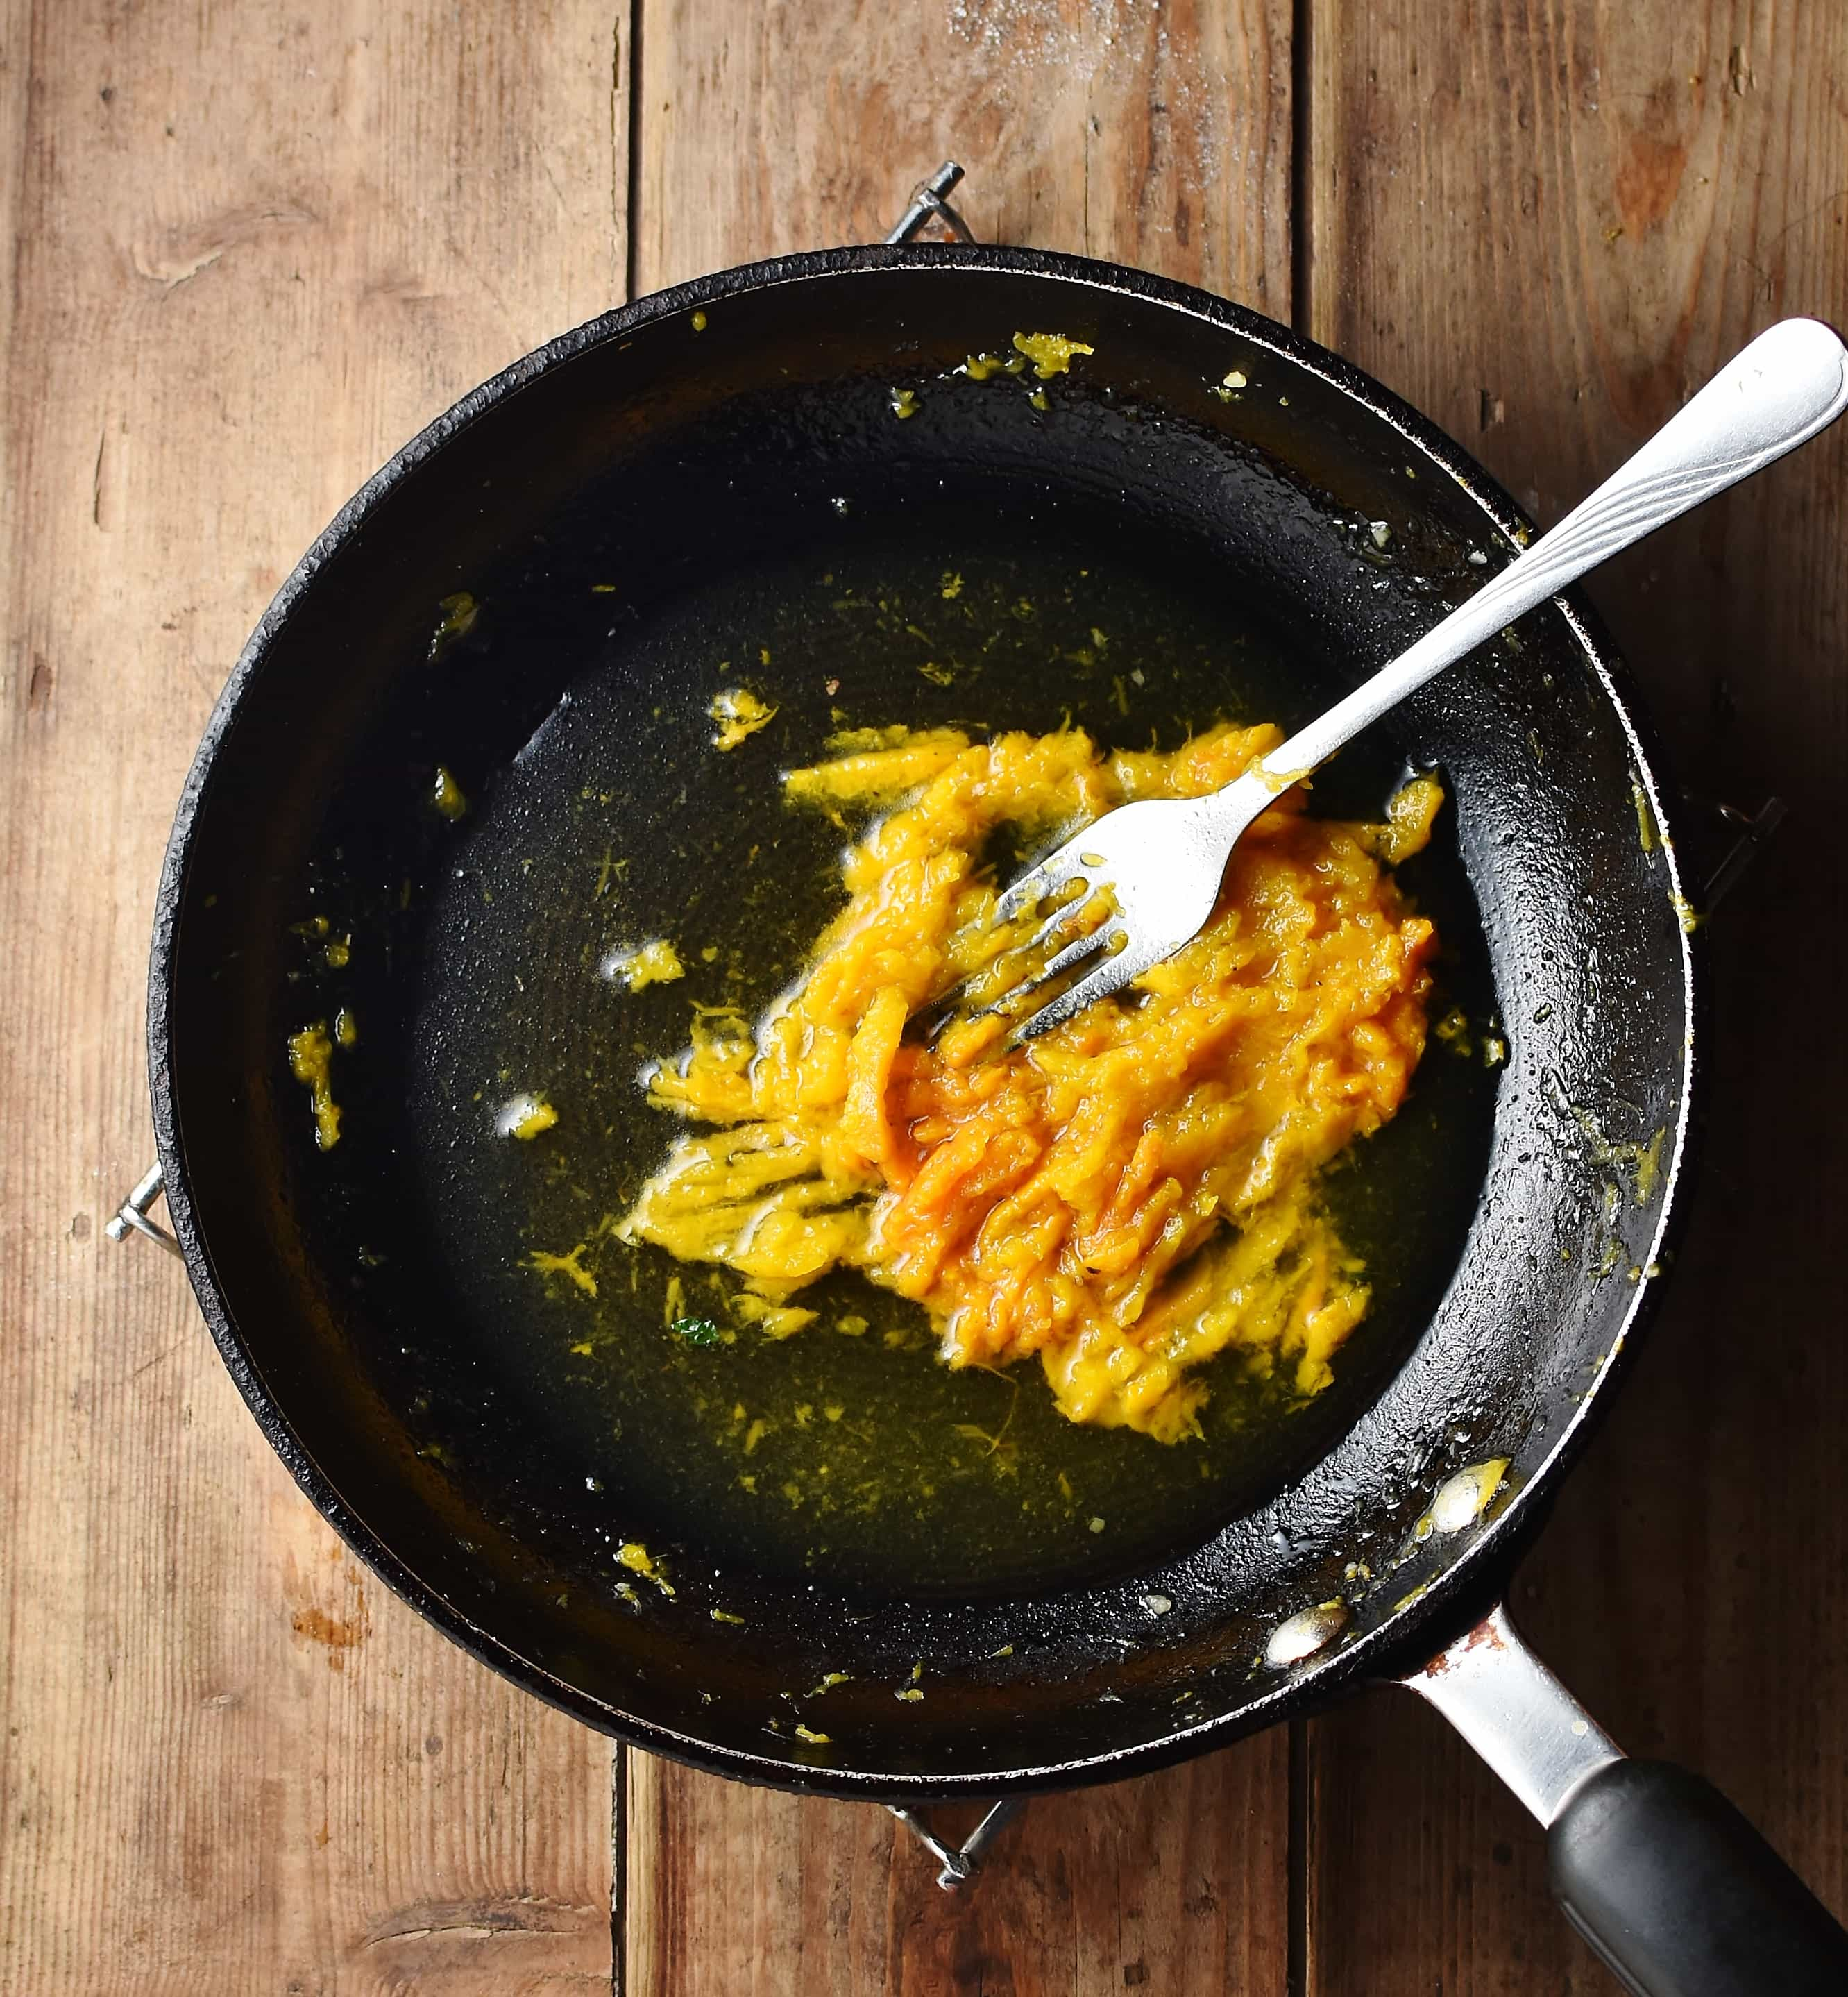 Mashed pumpkin with water and fork in black pan.